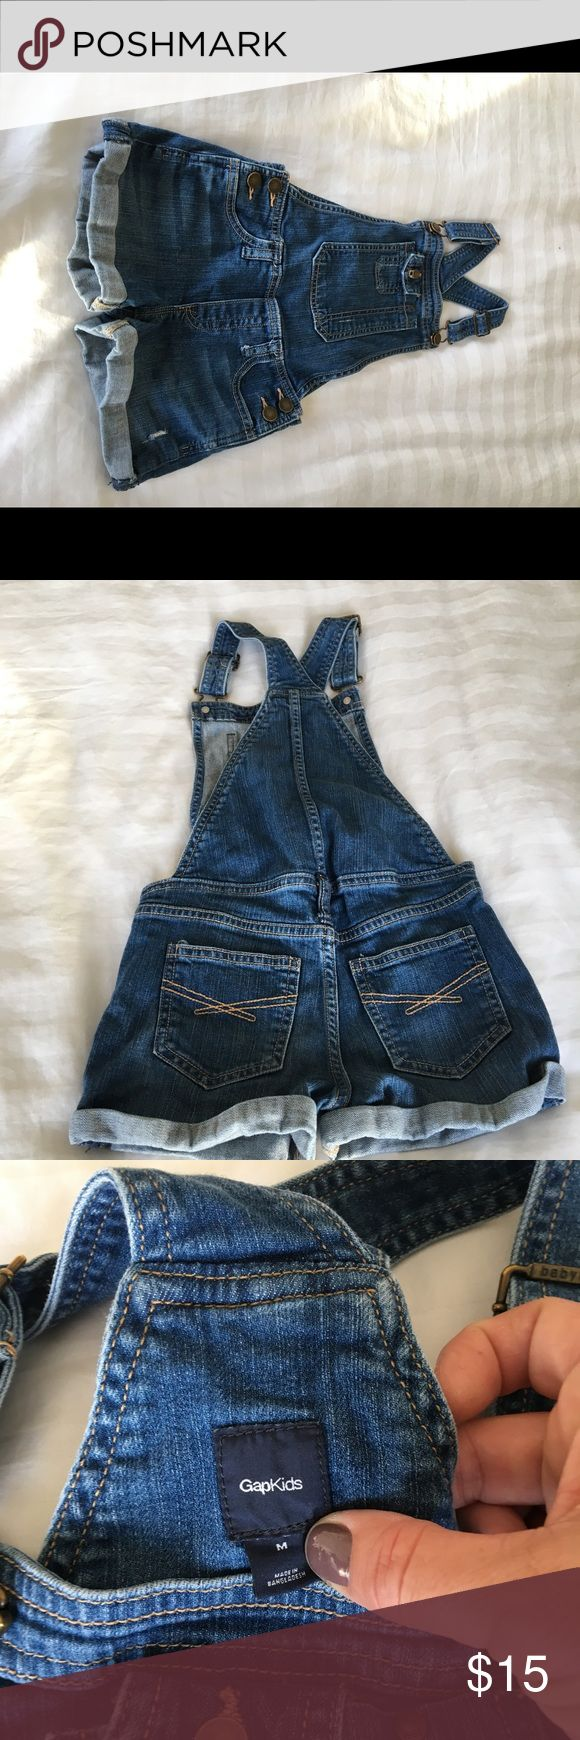 Gap short jean overalls for girls size m Gap short jean overalls for girls size m GAP Bottoms Overalls